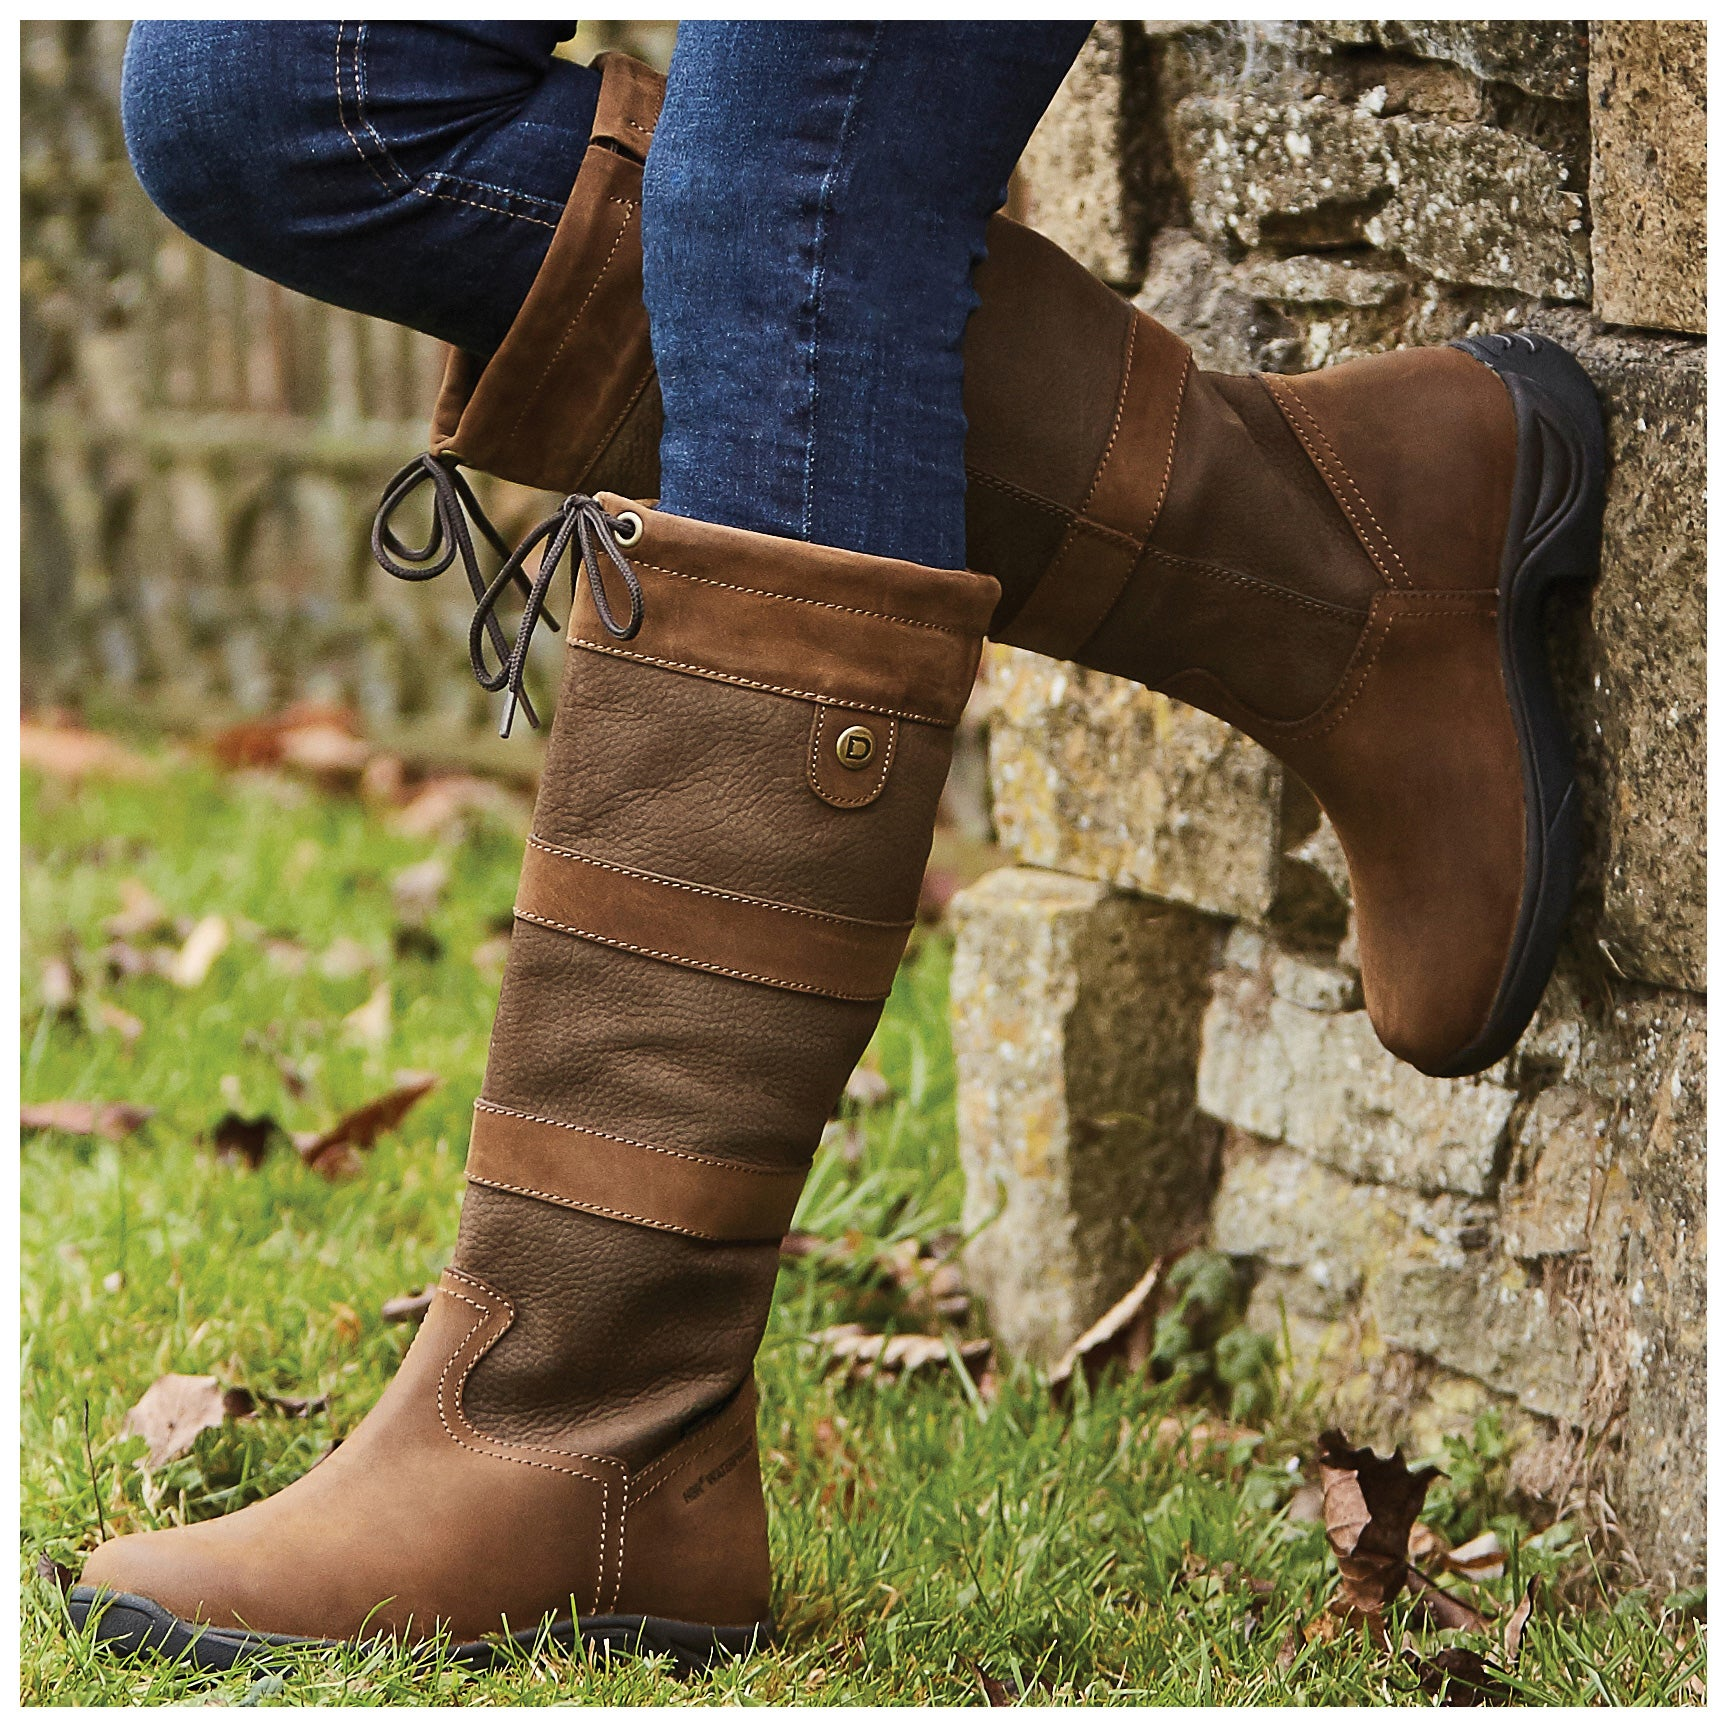 2f99c50e752 Dublin River III Women's Tall Boots-Chocolate - Riding Warehouse